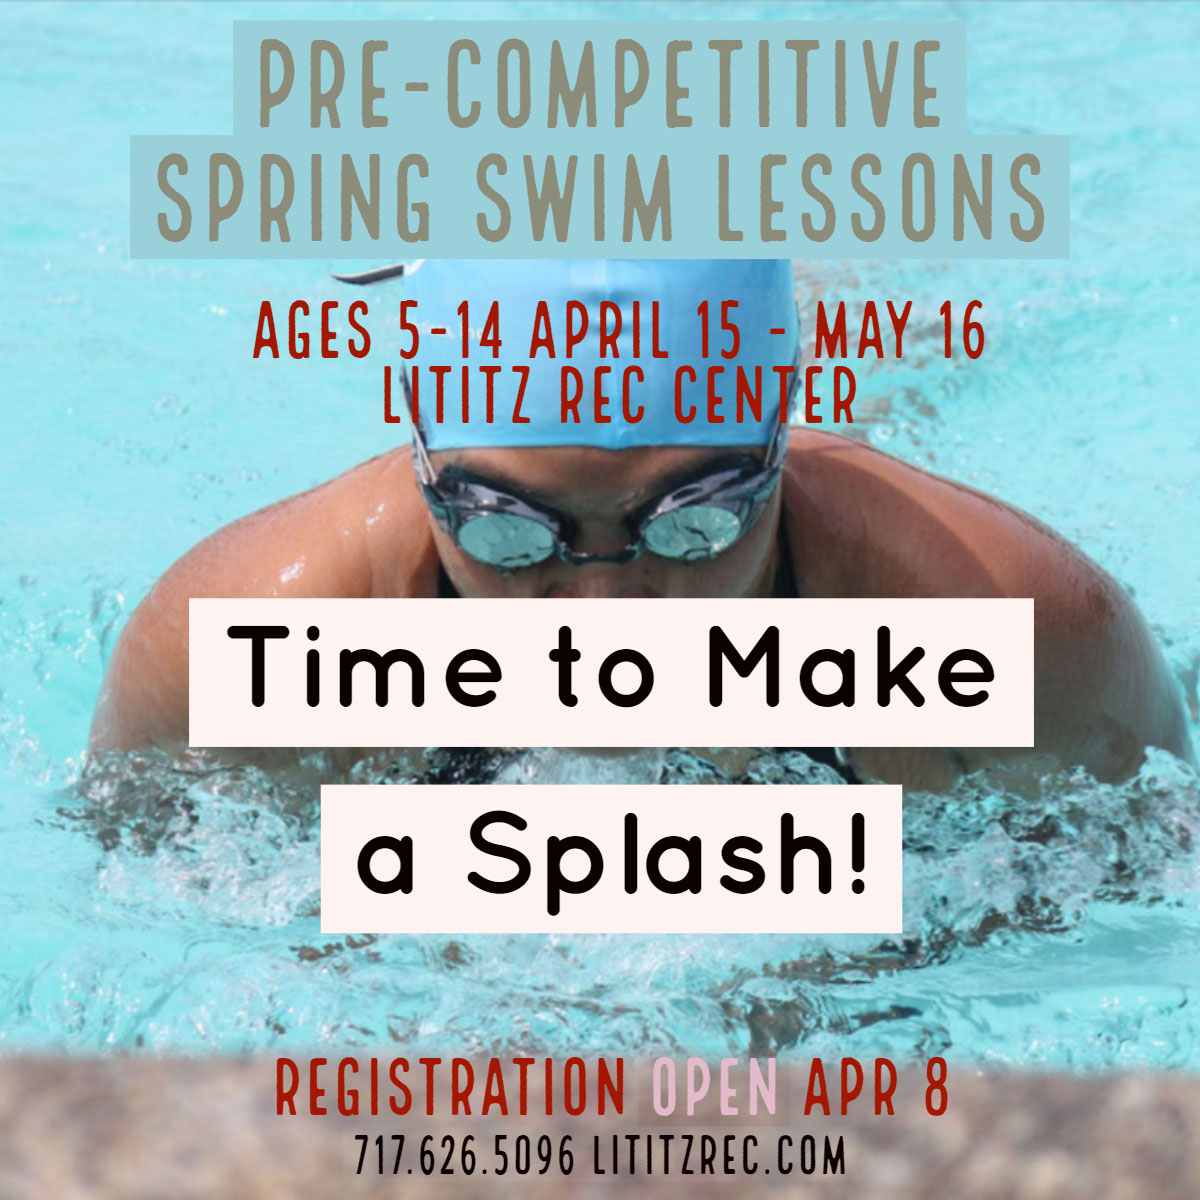 Time to Make a Splash! Time to Make a Splash!<P>Pre-Competitive Spring Swim Lessons<P>Registration Open Apr 8<P>Ages 5-14 April 15 - May 16<BR>Lititz rec Center<P>717.626.5096  lititzrec.com